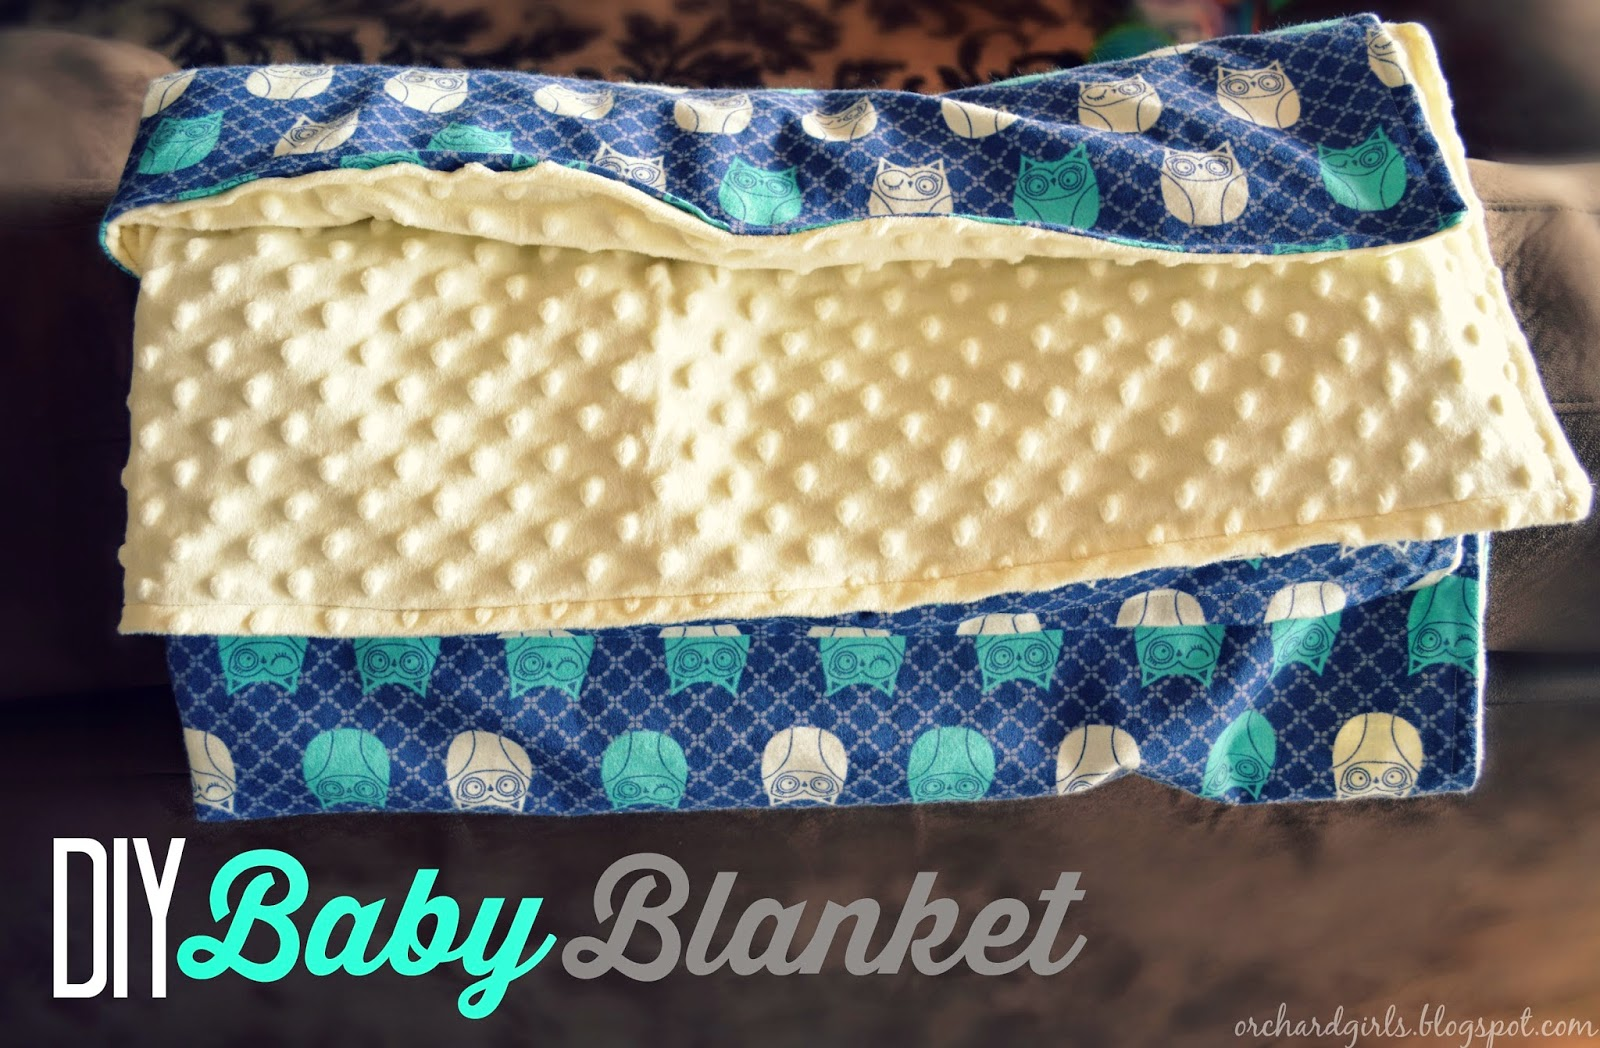 Orchard girls super easy diy baby blanket tutorial with minky super easy diy baby blanket tutorial with minky and cuddle fabric jeuxipadfo Gallery